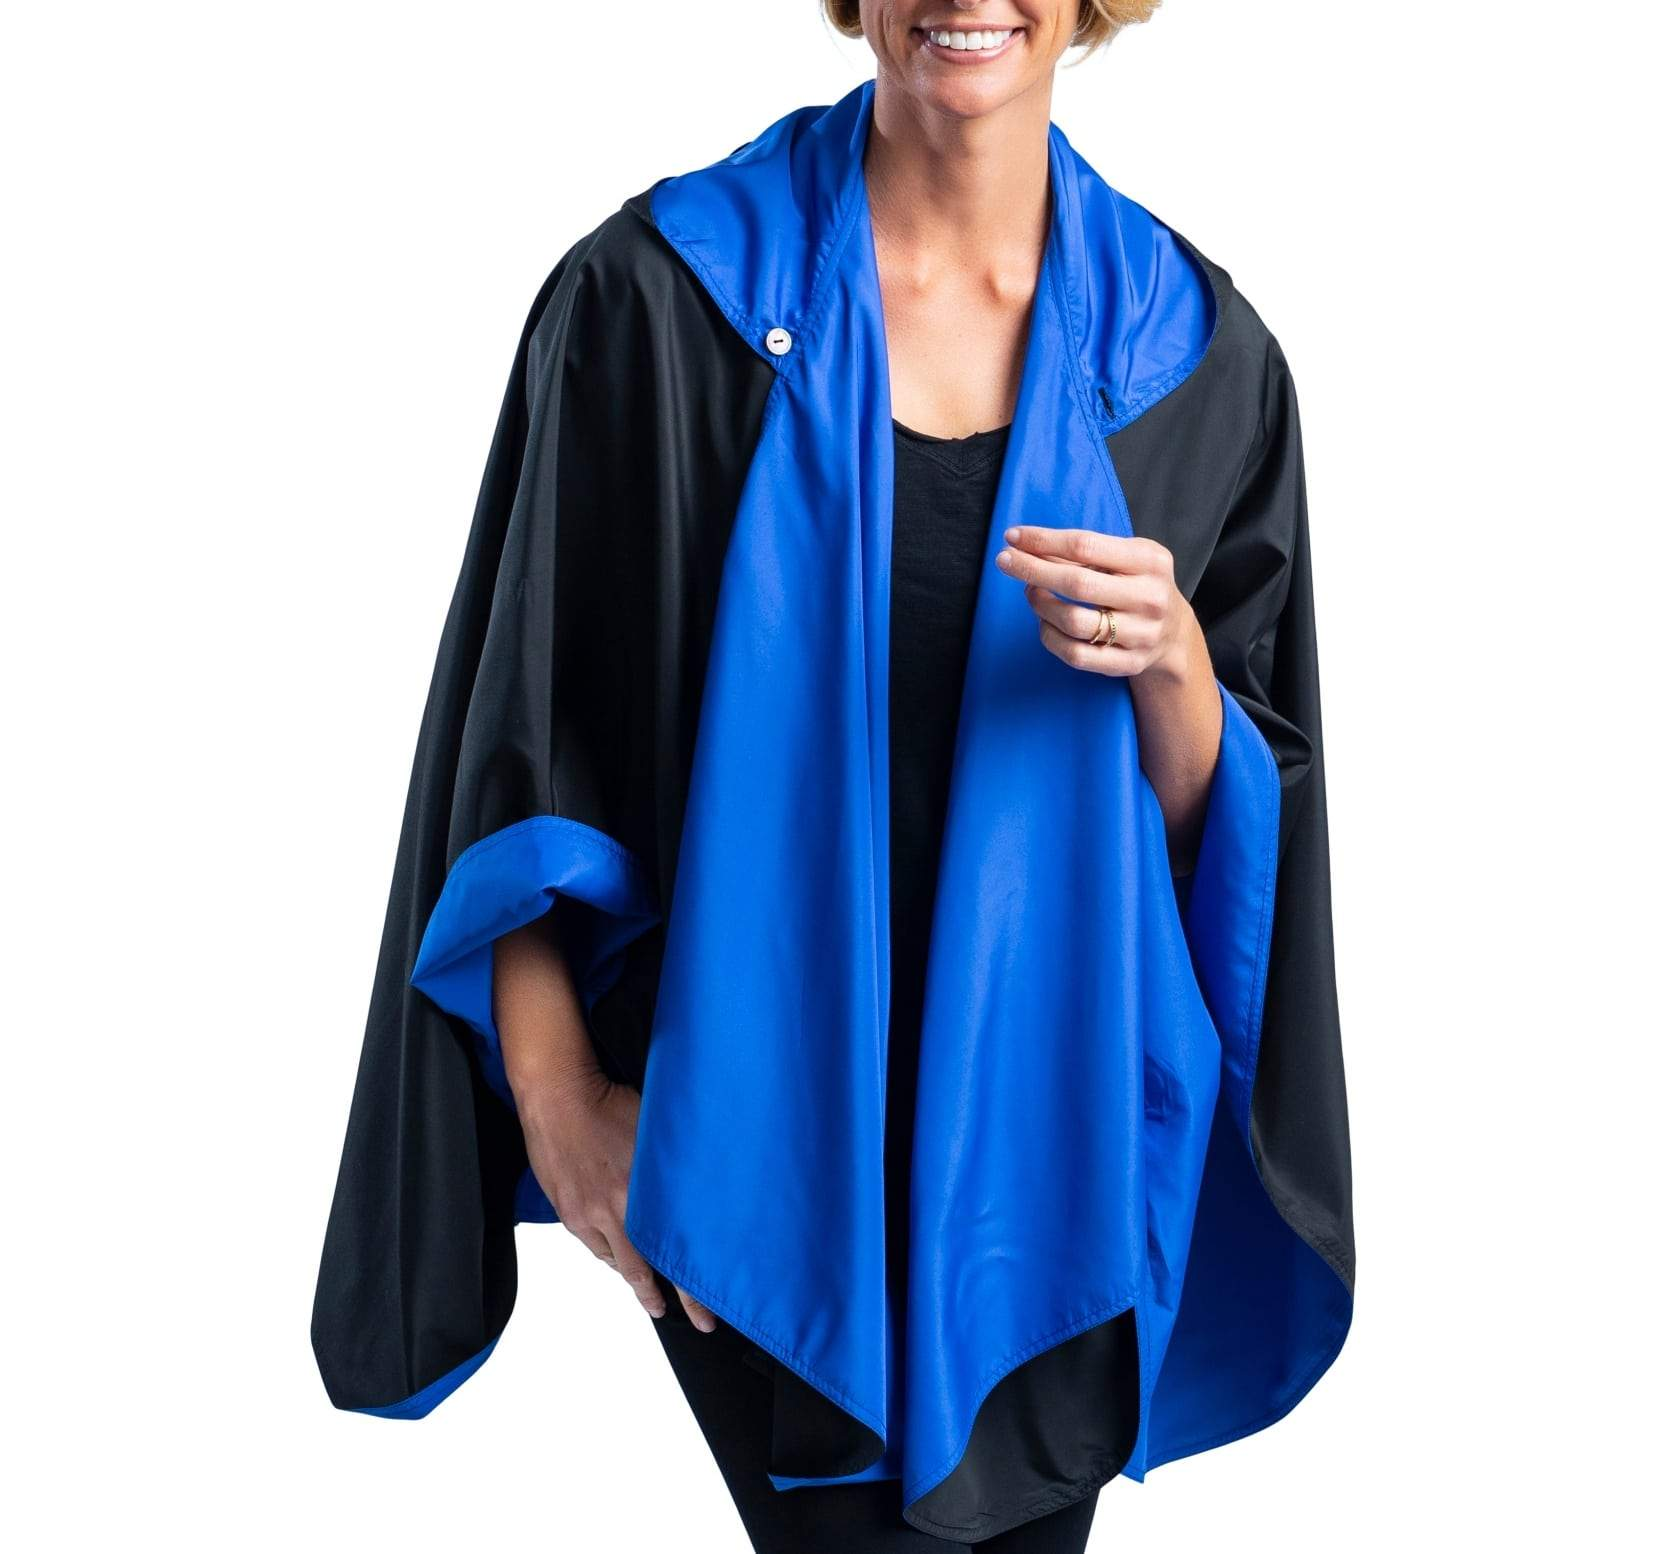 Woman wearing a Black/Royal Blue RainCaper travel cape with the Black side out, revealing the Royal Blue print at the lapels and cuffs